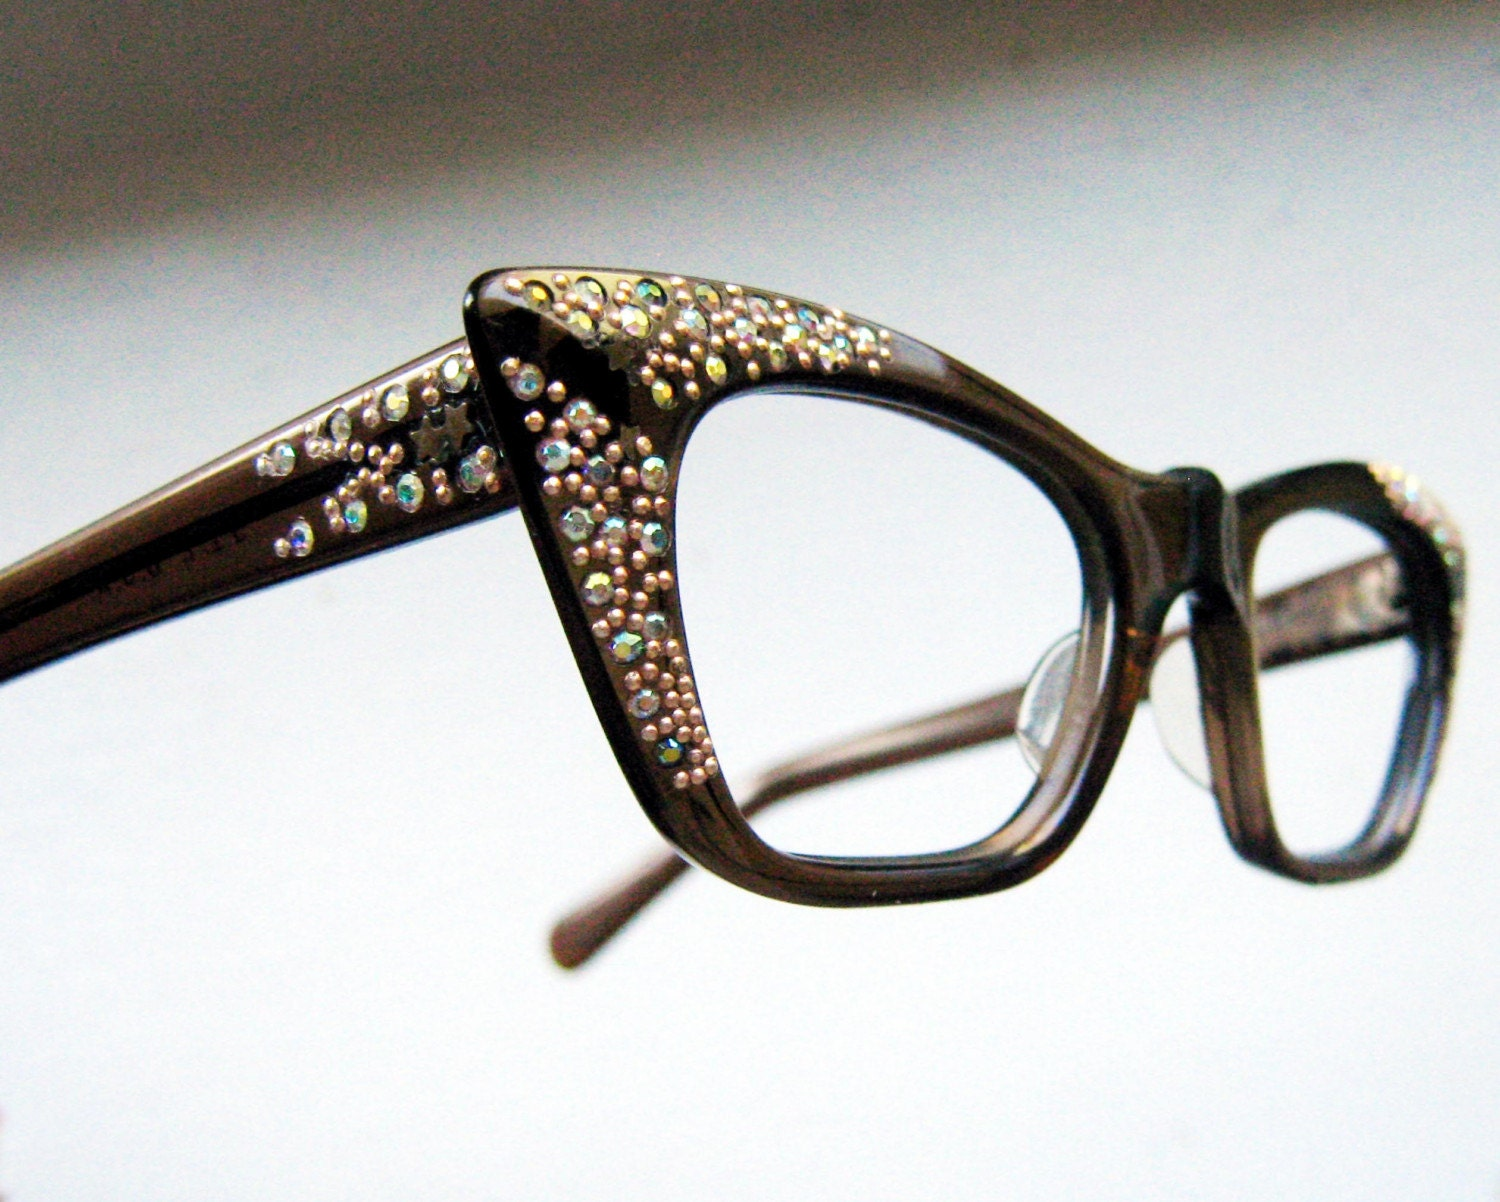 Eyeglasses Frames With Bling : Vintage 50s Square Cat Eye Rhinestone Eyeglass Frames